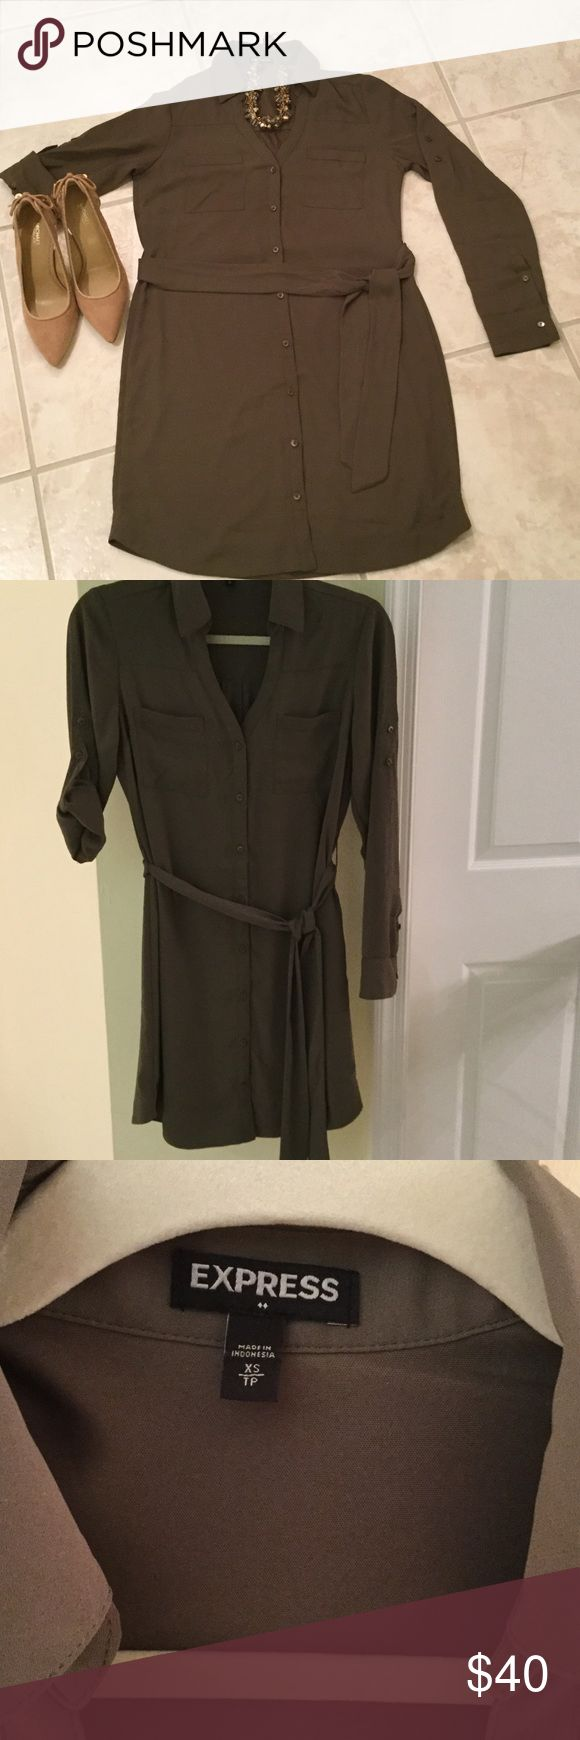 Express olive green shirt dress. Express olive green button up shirt dress with belted waist and convertible sleeves. NWOT Express Dresses Mini